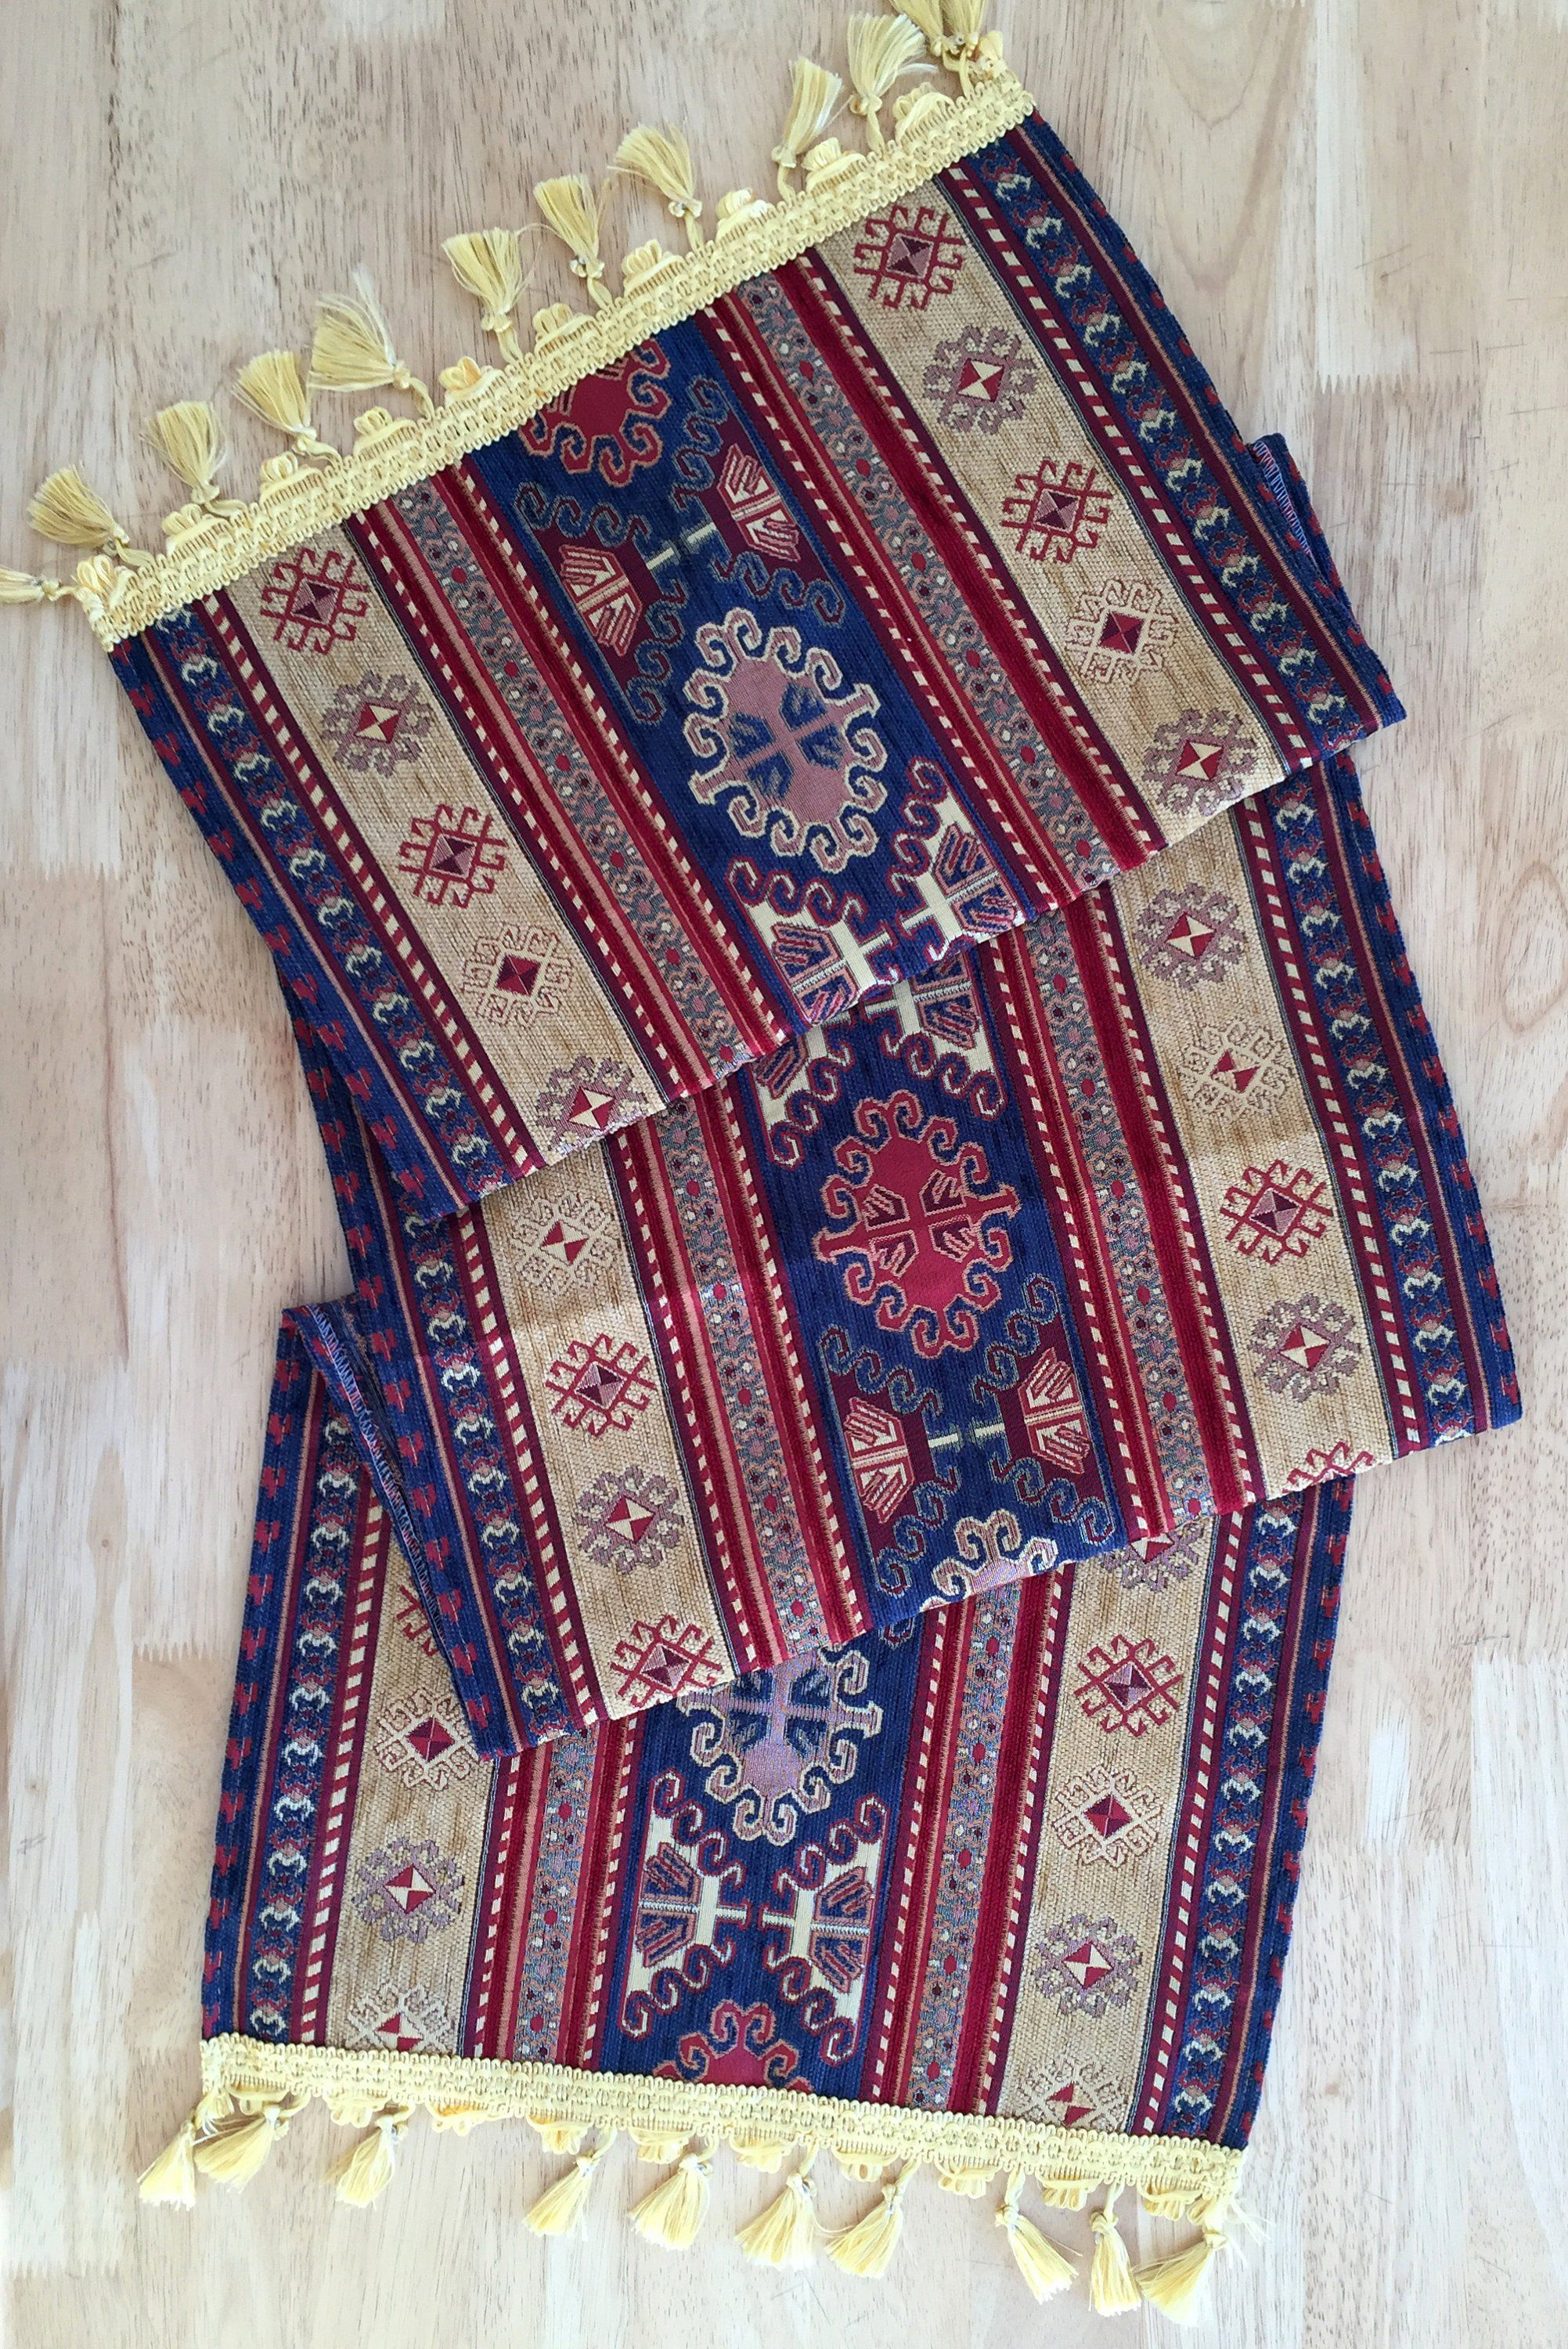 Kilim Patterned Table Runner, NavyBeige Striped, With